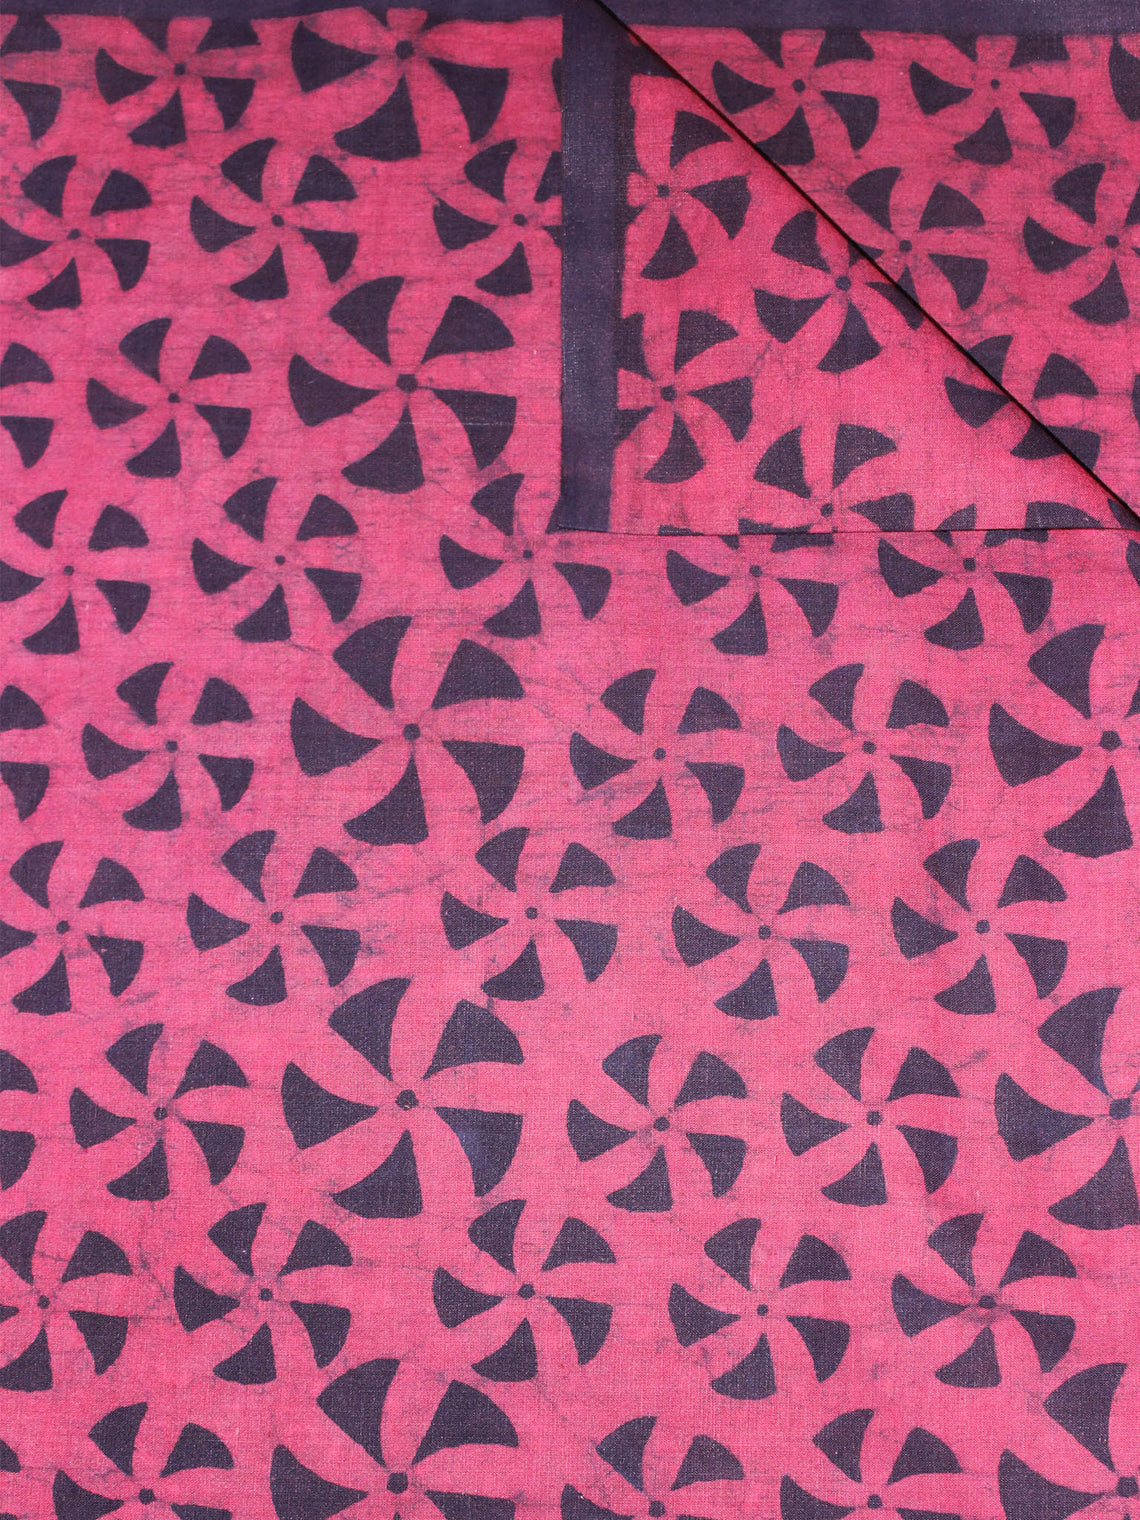 Light Pink Black Hand Block Printed Cotton Cambric Fabric Per Meter - F0916465